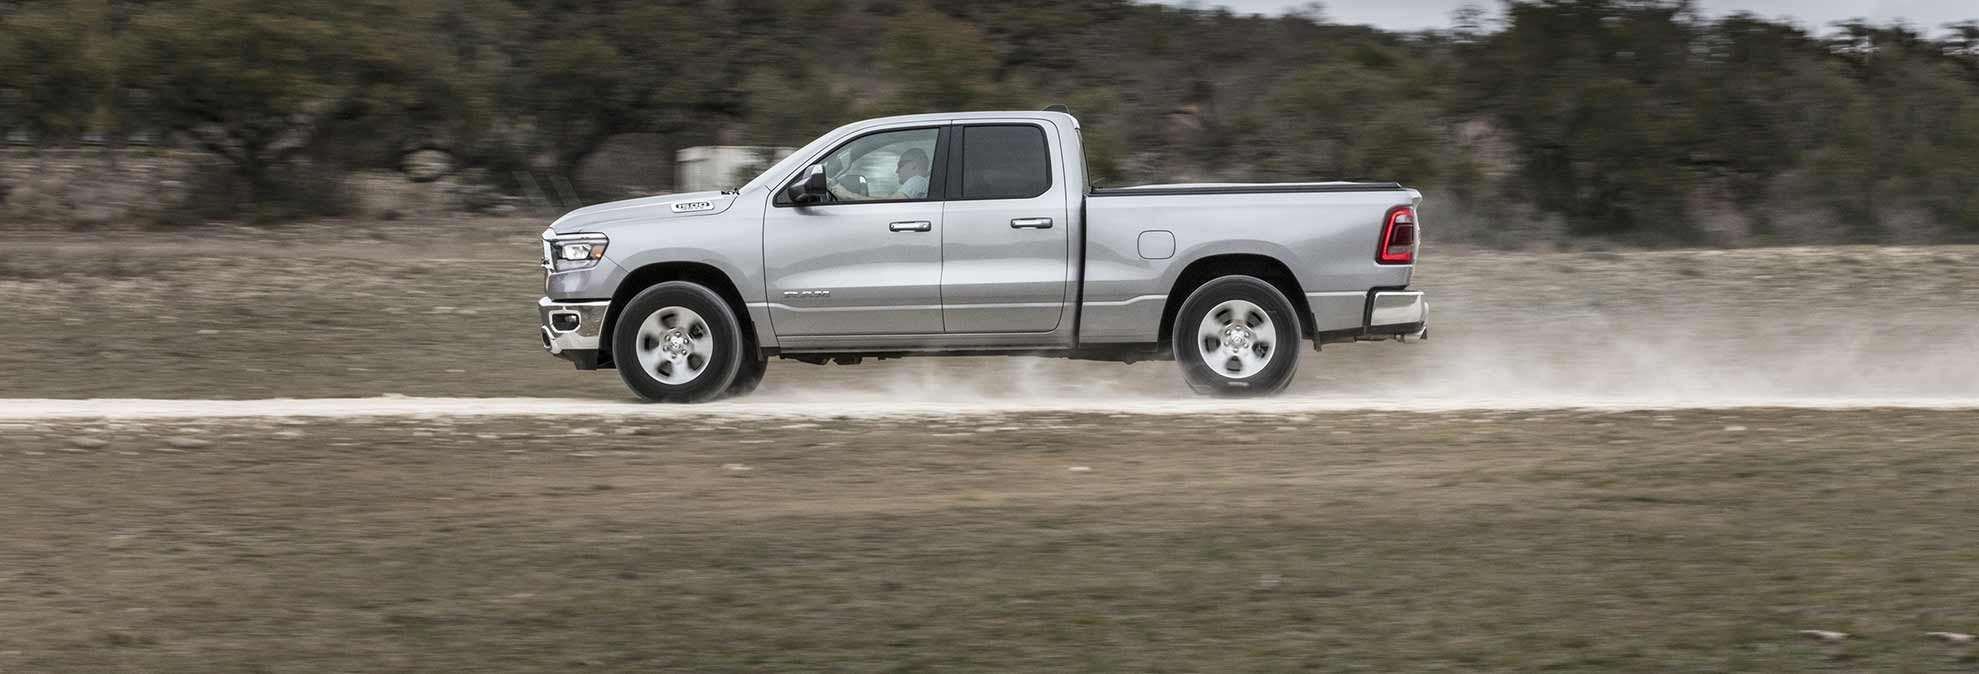 dba9a87e95 Best Pickup Truck Buying Guide - Consumer Reports